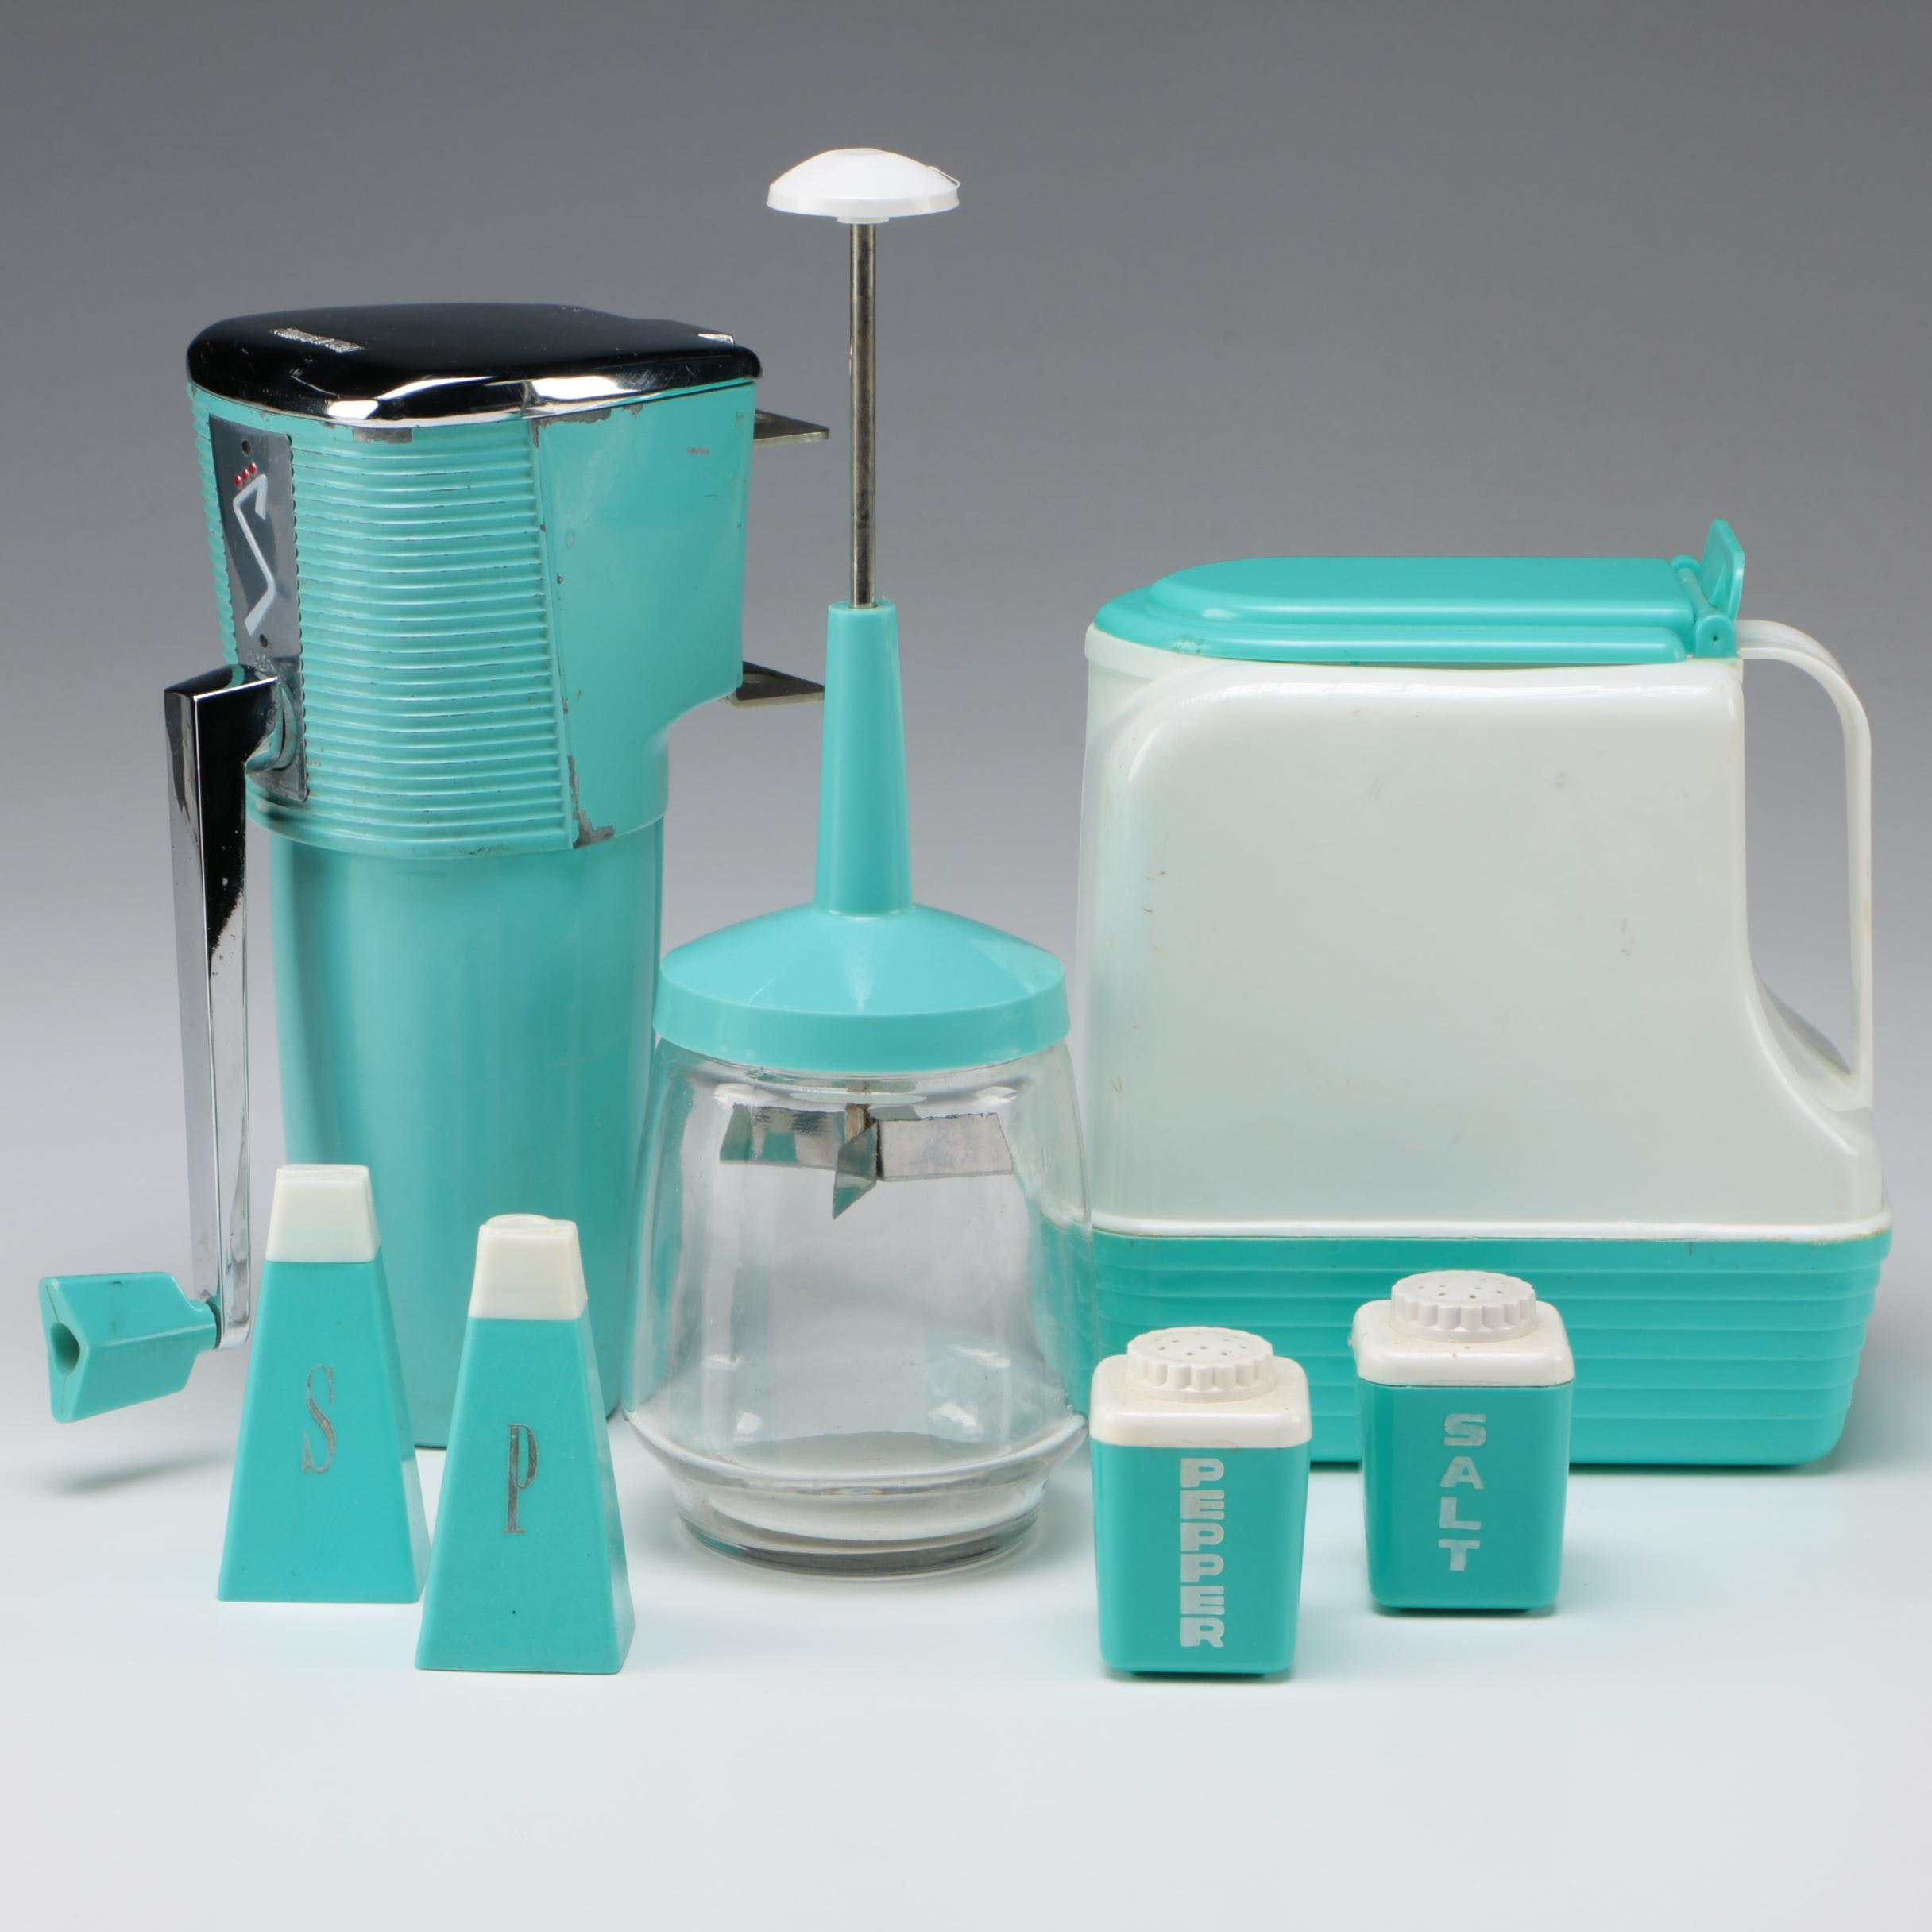 Light Blue Ice Grinder, Shakers and Pitcher, Mid-Century